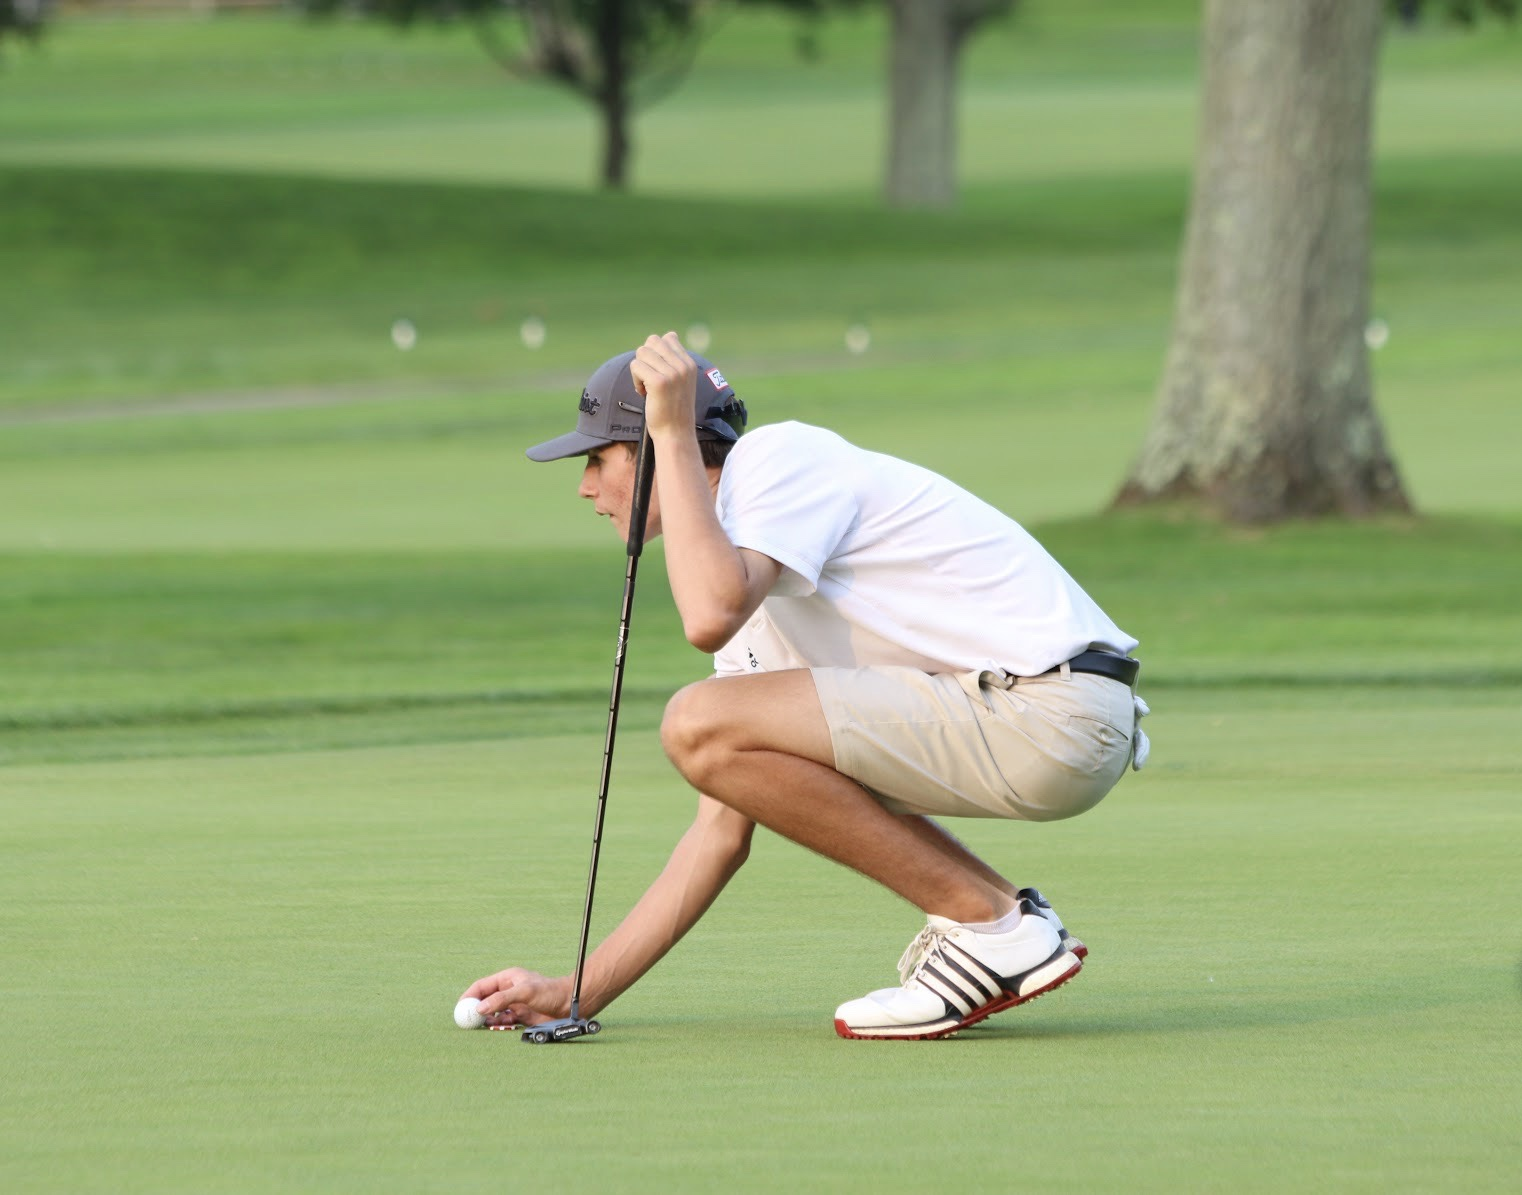 Joey Miller Only Freshman In Section To Advance to WPIAL Semi-Finals